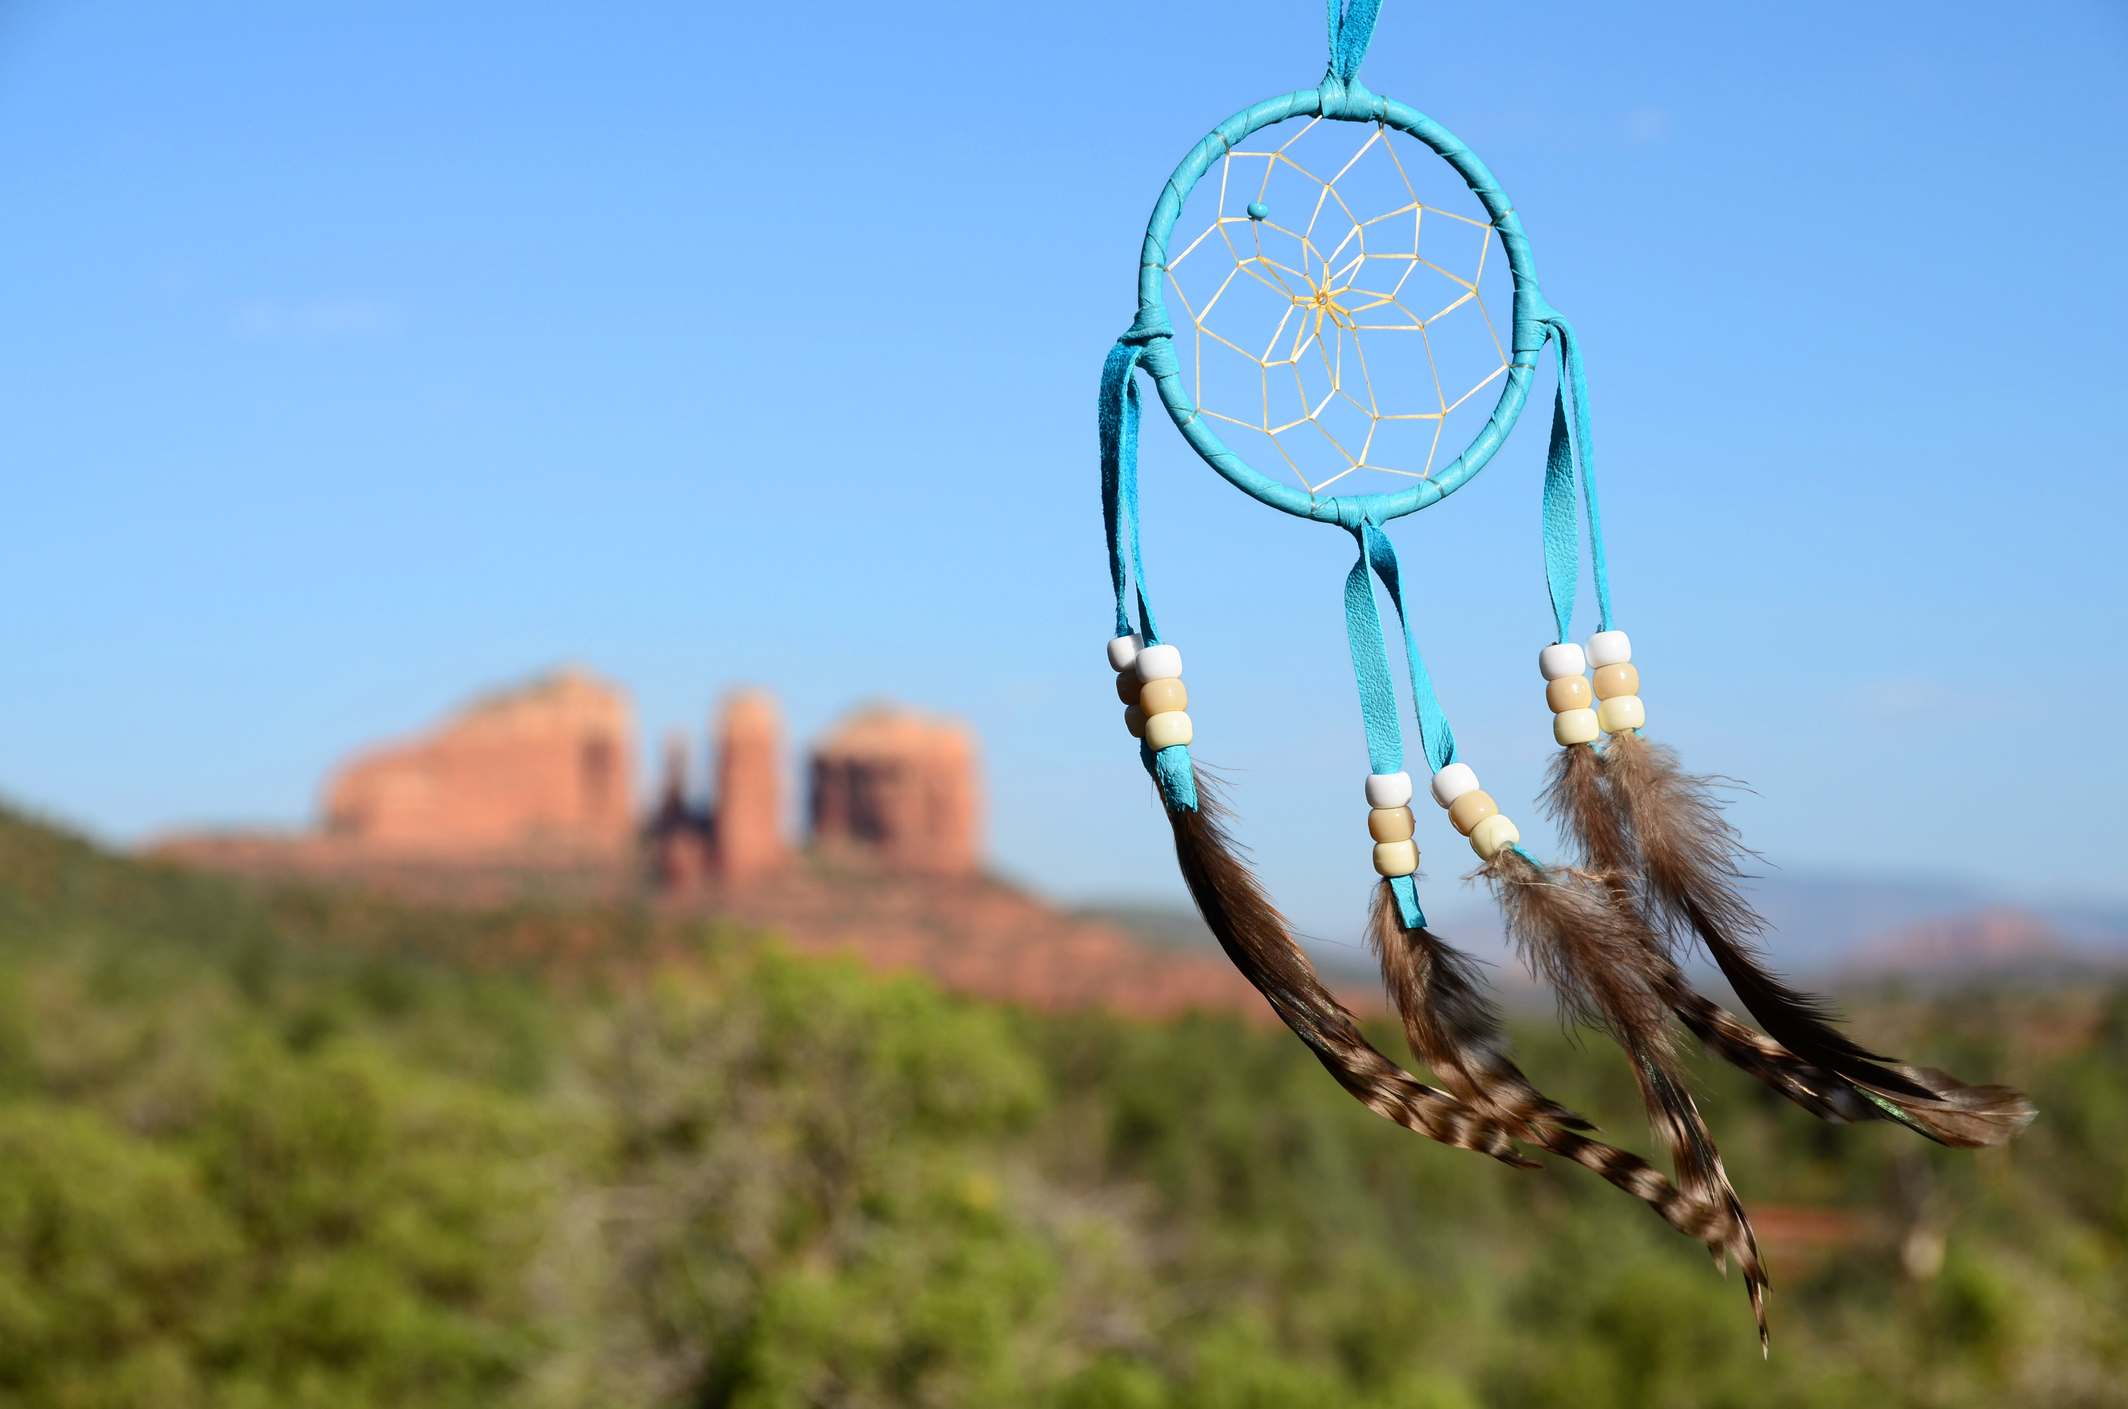 A view through a dreamcatcher of the famous red rock landscape of Sedona, Arizona.